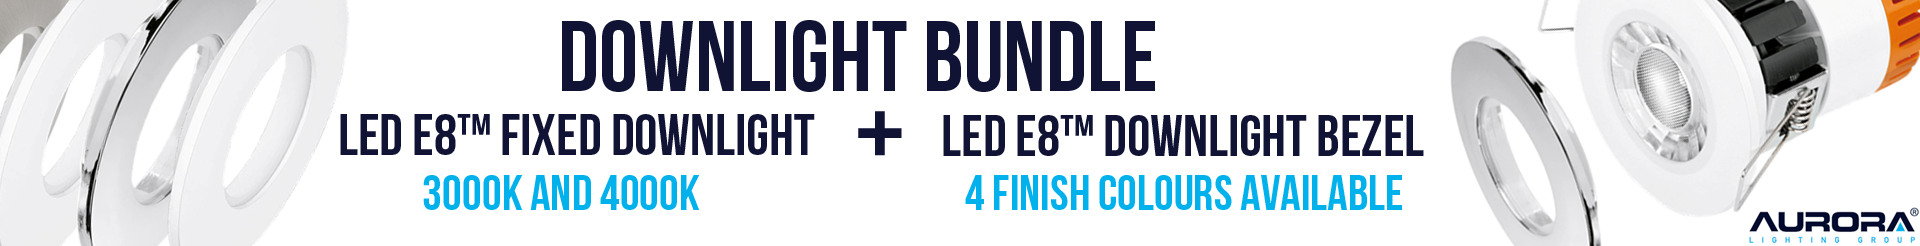 Non-Dimmable GU10 LEDs